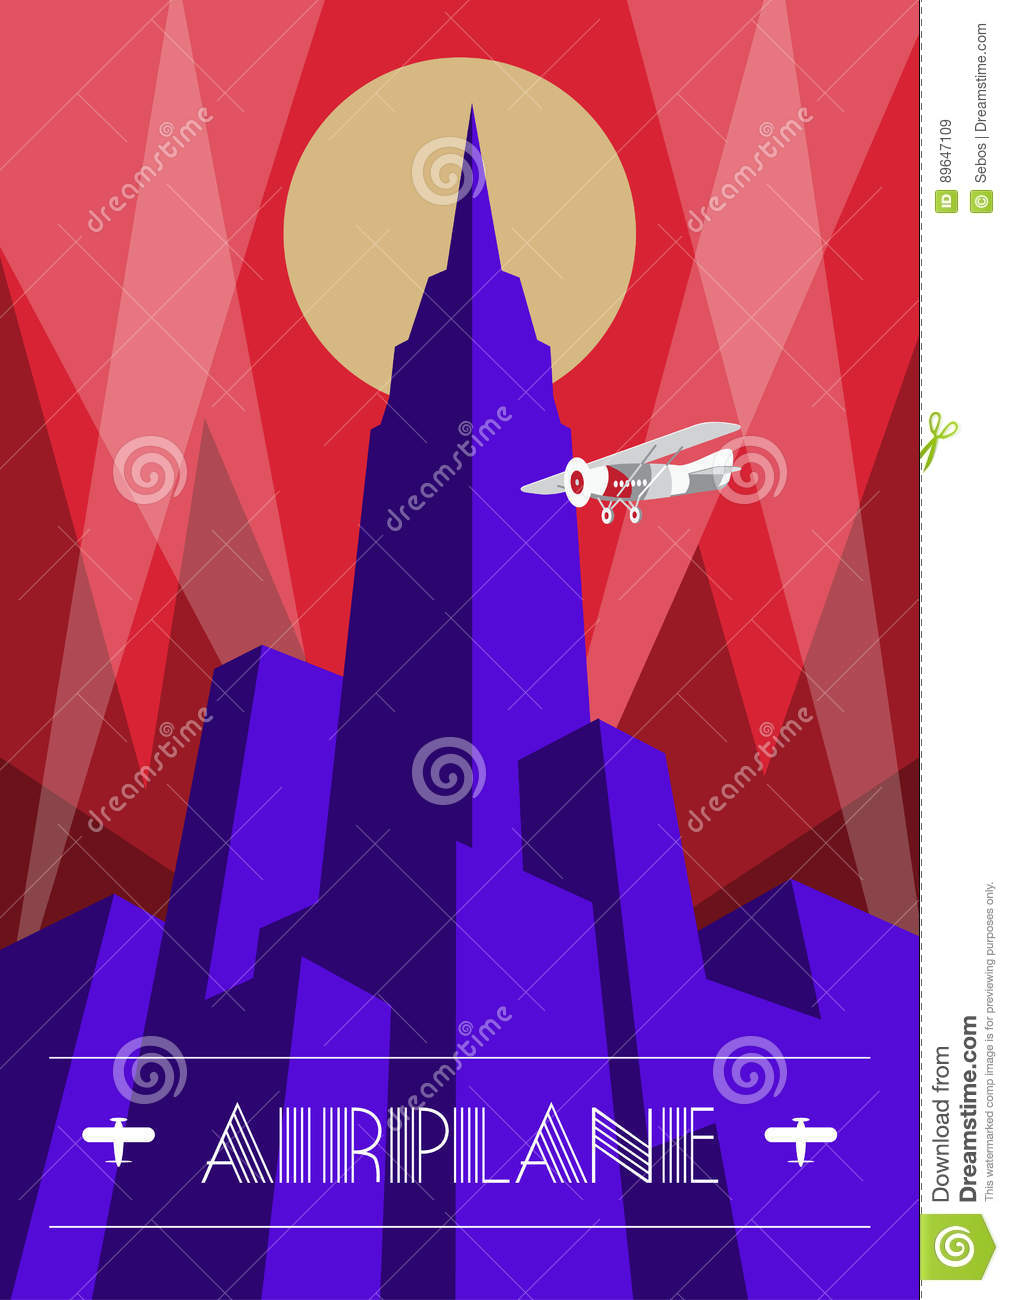 skyscraper and airplane poster in art deco style  vintage travel illustration stock vector